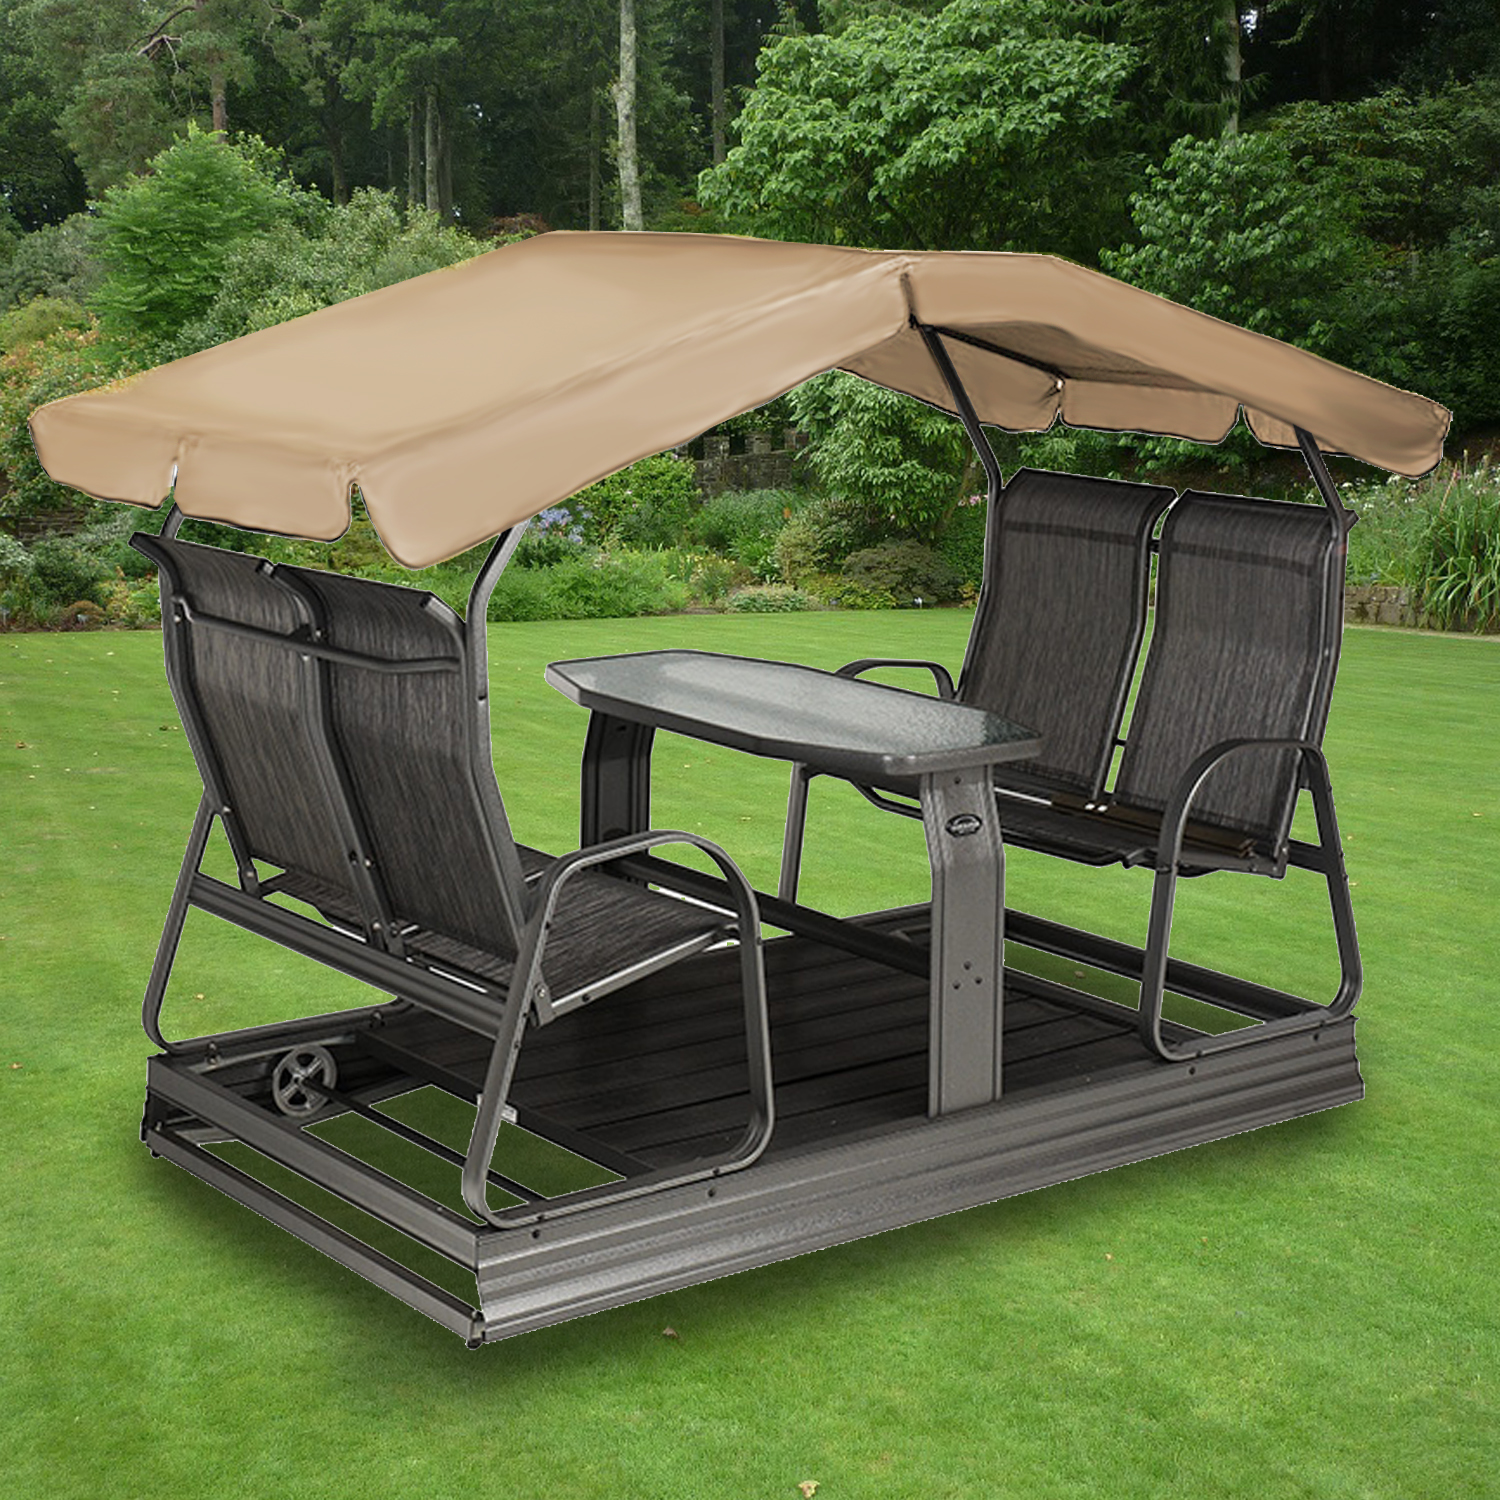 Replacement Canopy For 3 Seater Swing Amp Hammock